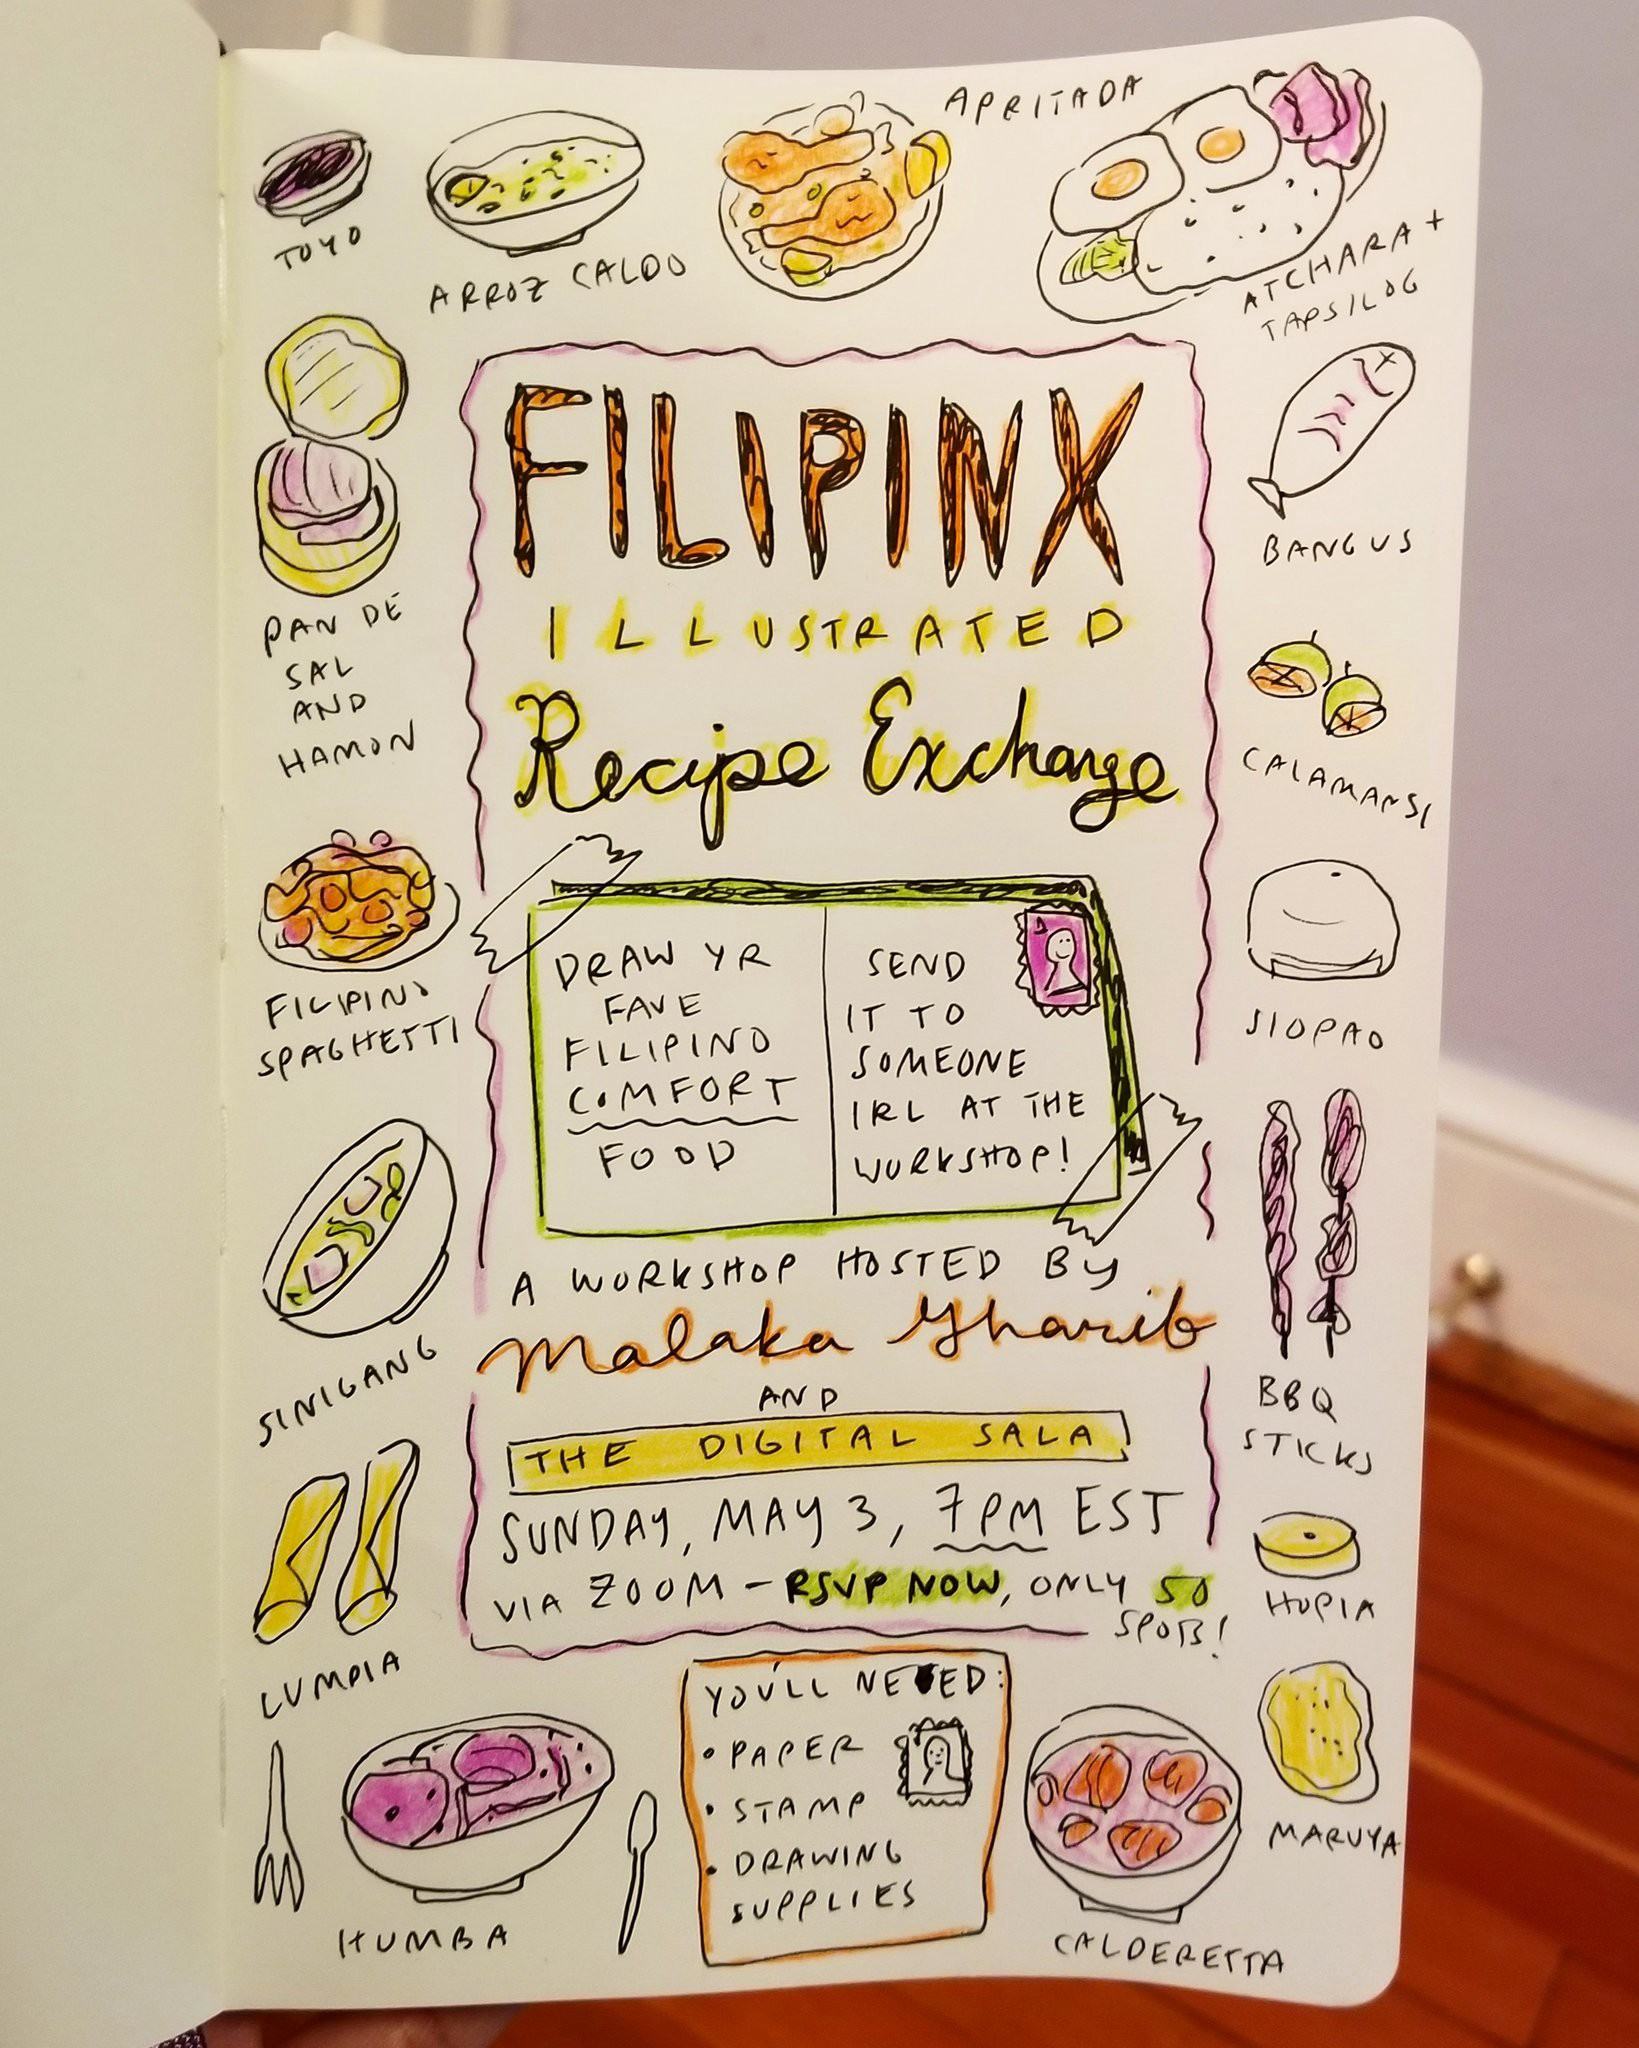 Filipinos Around The World Draw Their Pandemic Comfort Recipes By Malaka Gharib Medium